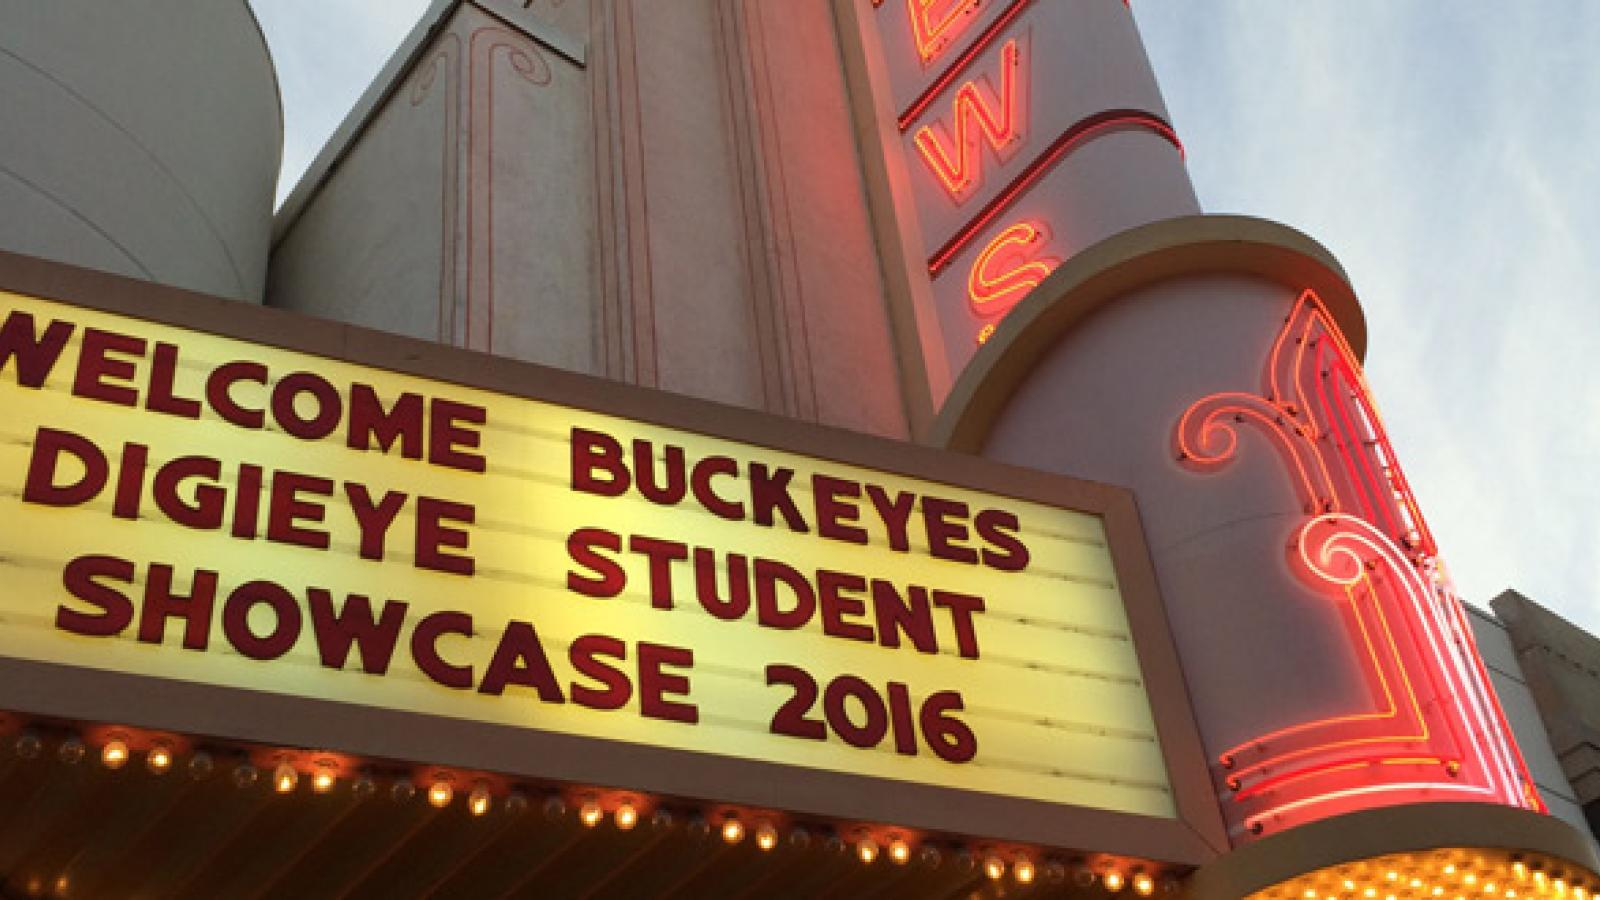 Theatre banner about the Digieye Student Showcase 2016.